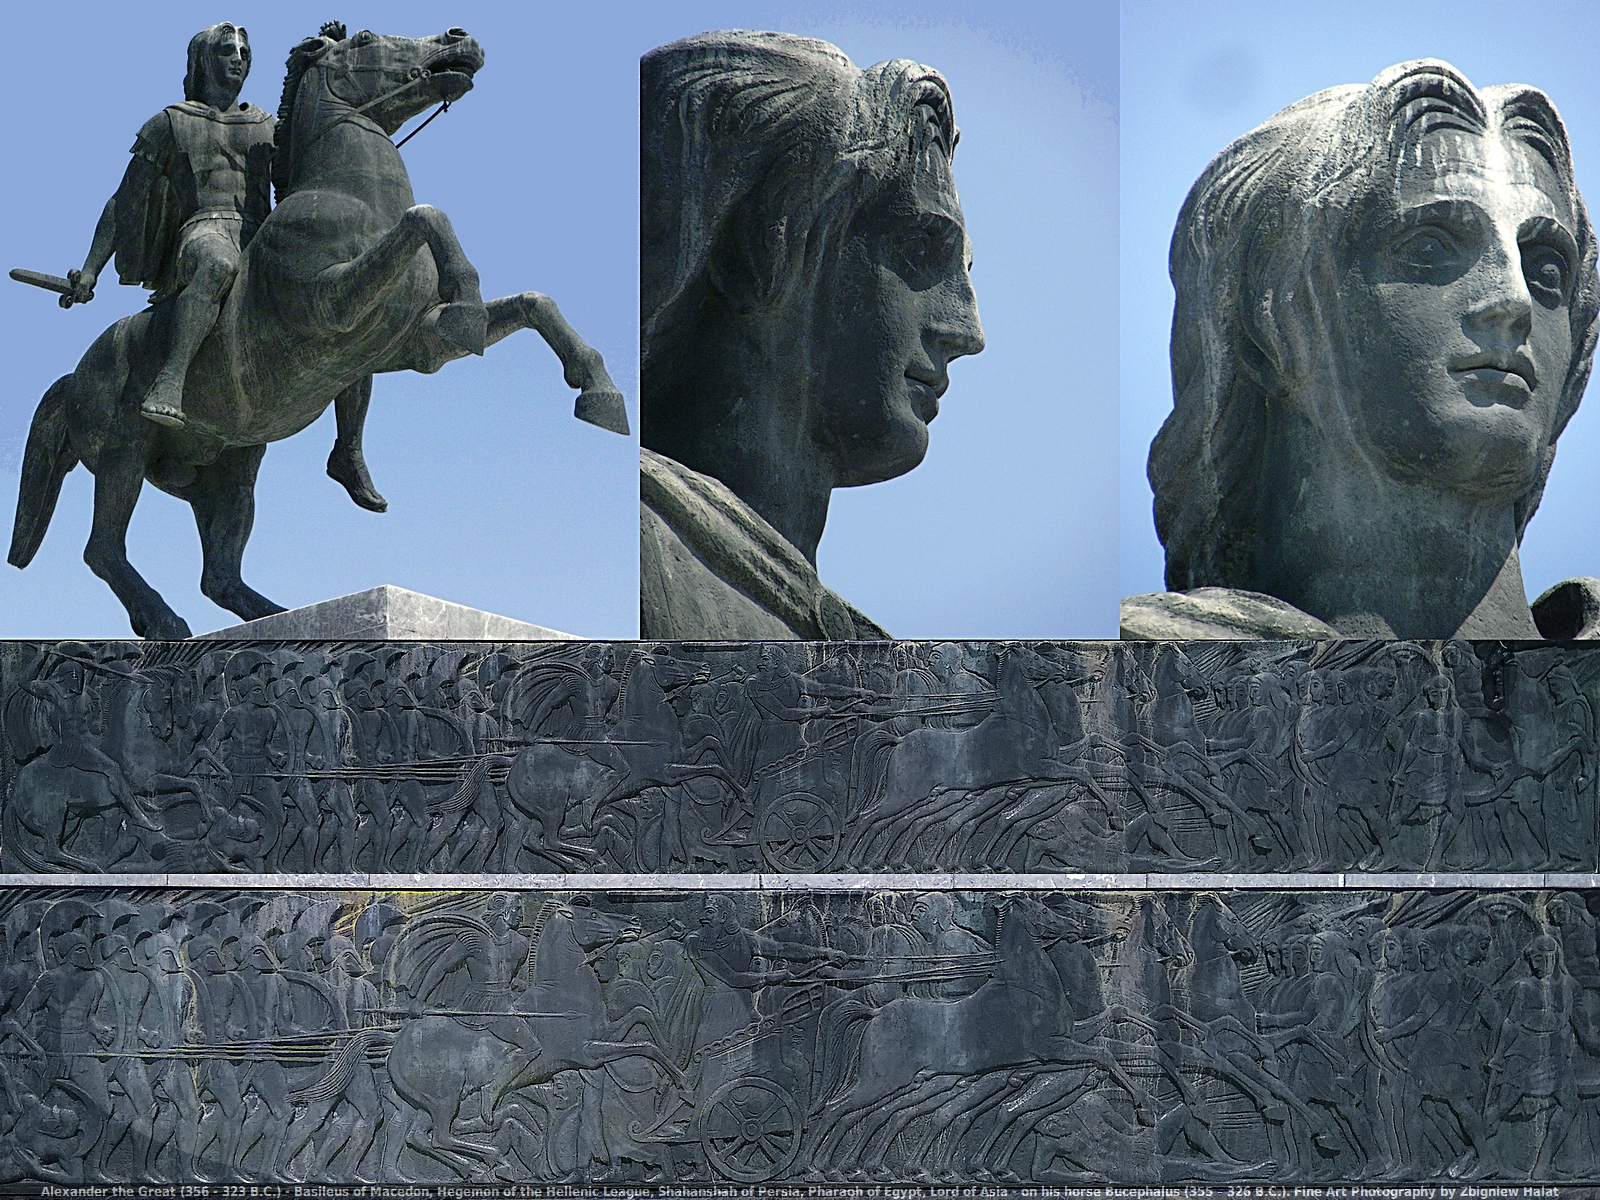 Alexander the Great (356 - 323 B.C.) - Basileus of Macedon, Hegemon of the Hellenic League, Shahanshah of Persia, Pharaoh of Egypt, Lord of Asia - on his horse Bucephalus (355 – 326 B.C.). Fine Art Photography by Zbigniew Halat. Alexander succeeded his father to the throne at the age of twenty and created one of the largest empires of the ancient world by the age of thirty, stretching from Greece to northwestern India. He was undefeated in battle and is widely considered one of history's most successful military commanders.